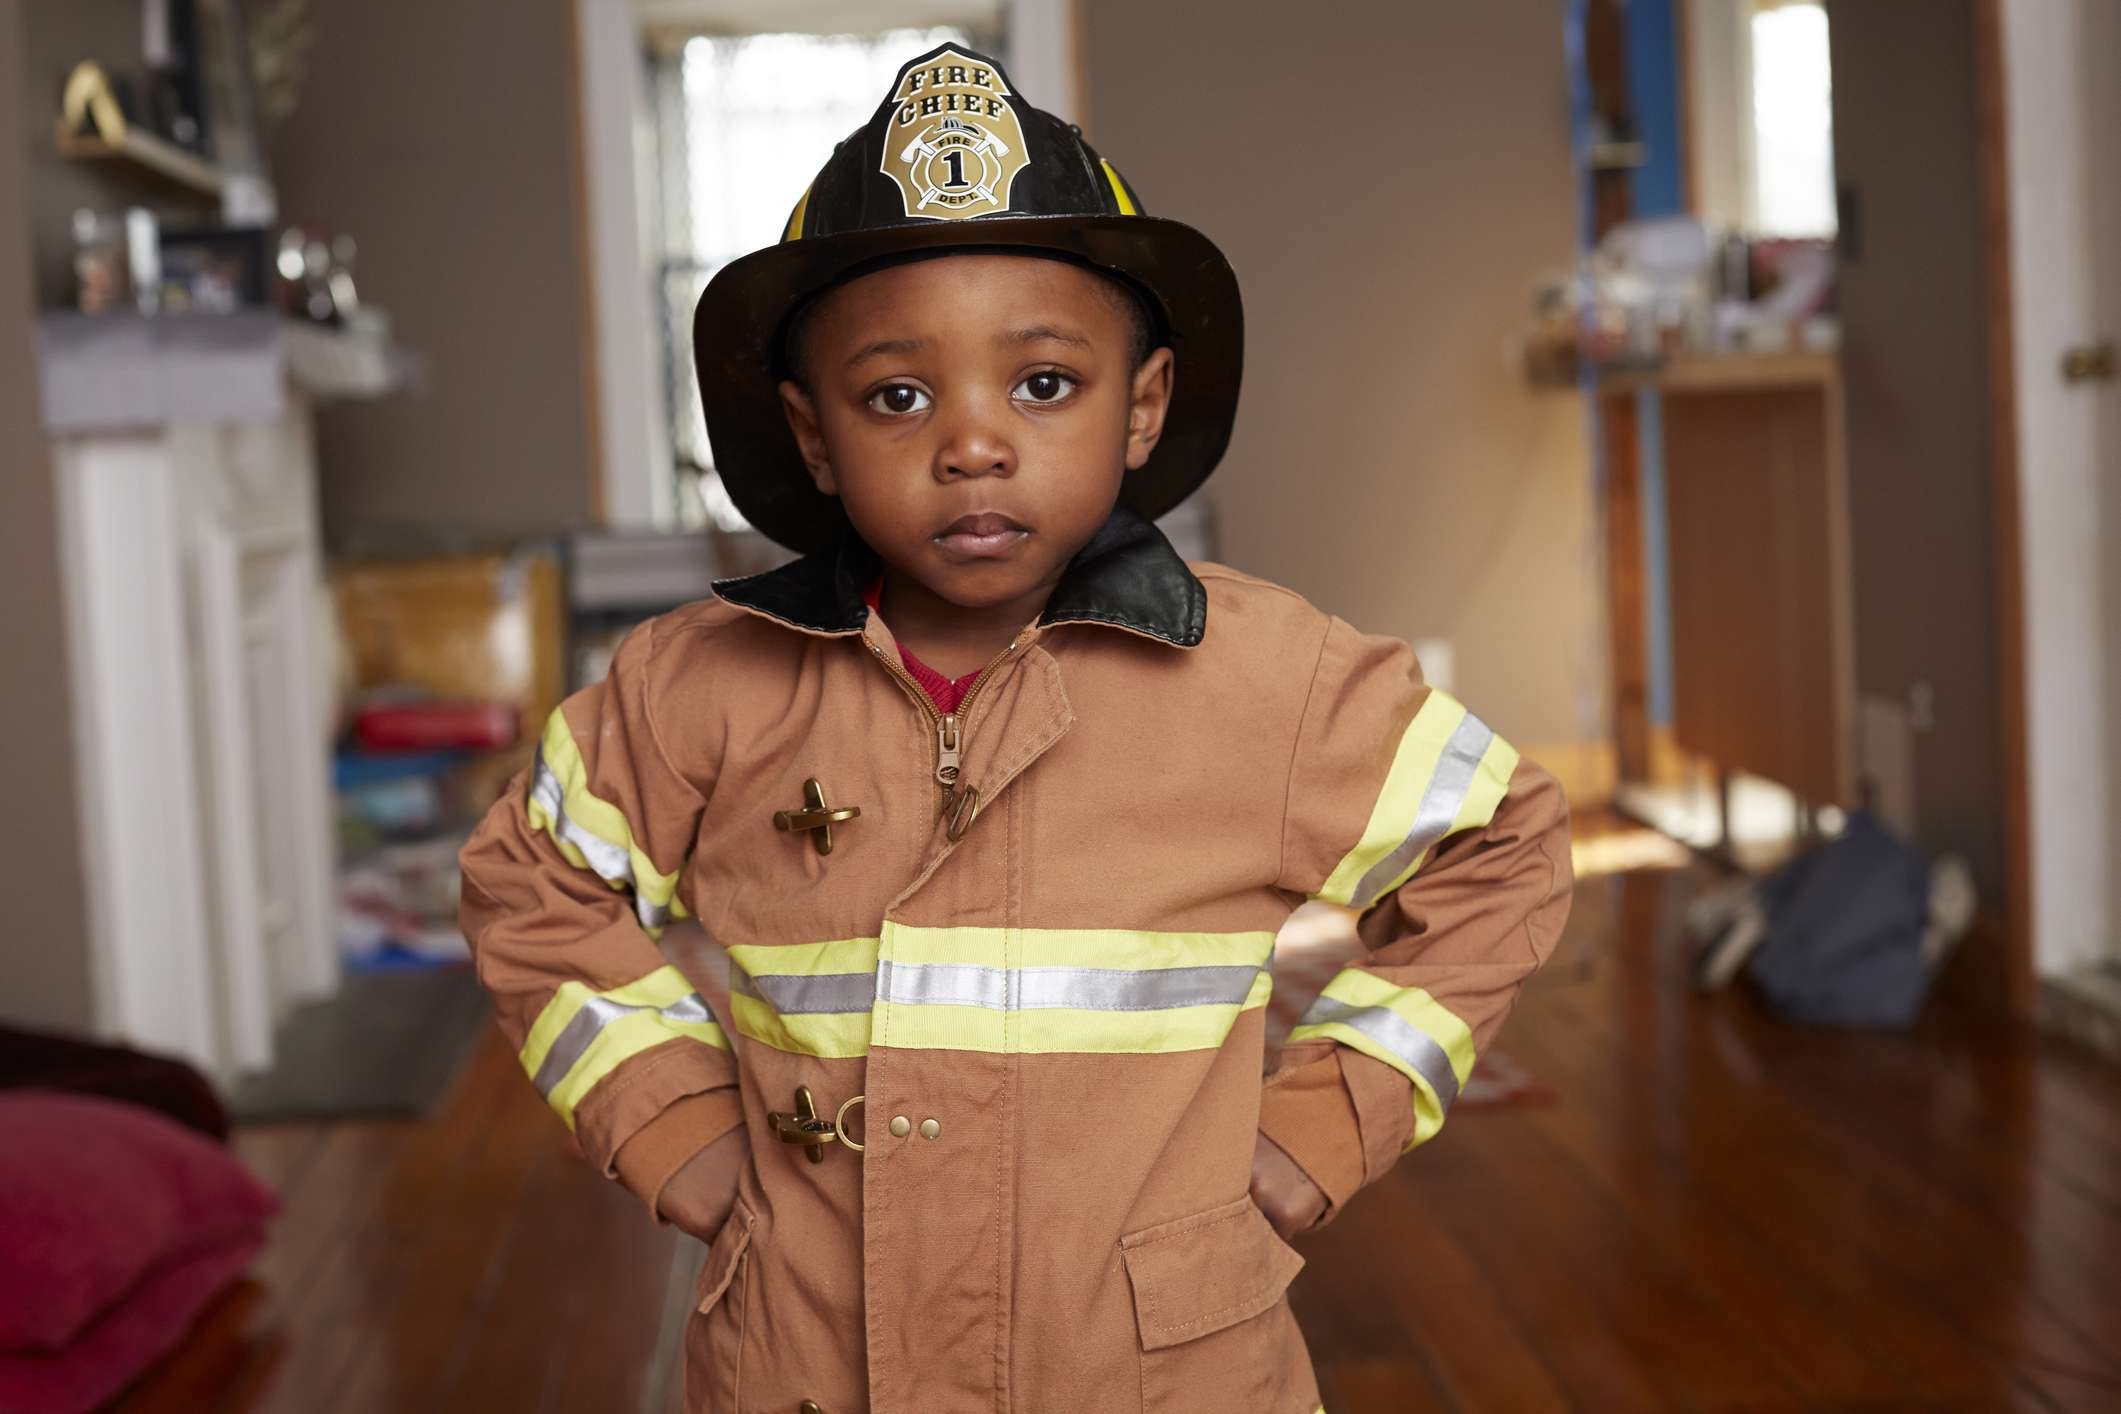 Boy dressed in firefighter costume